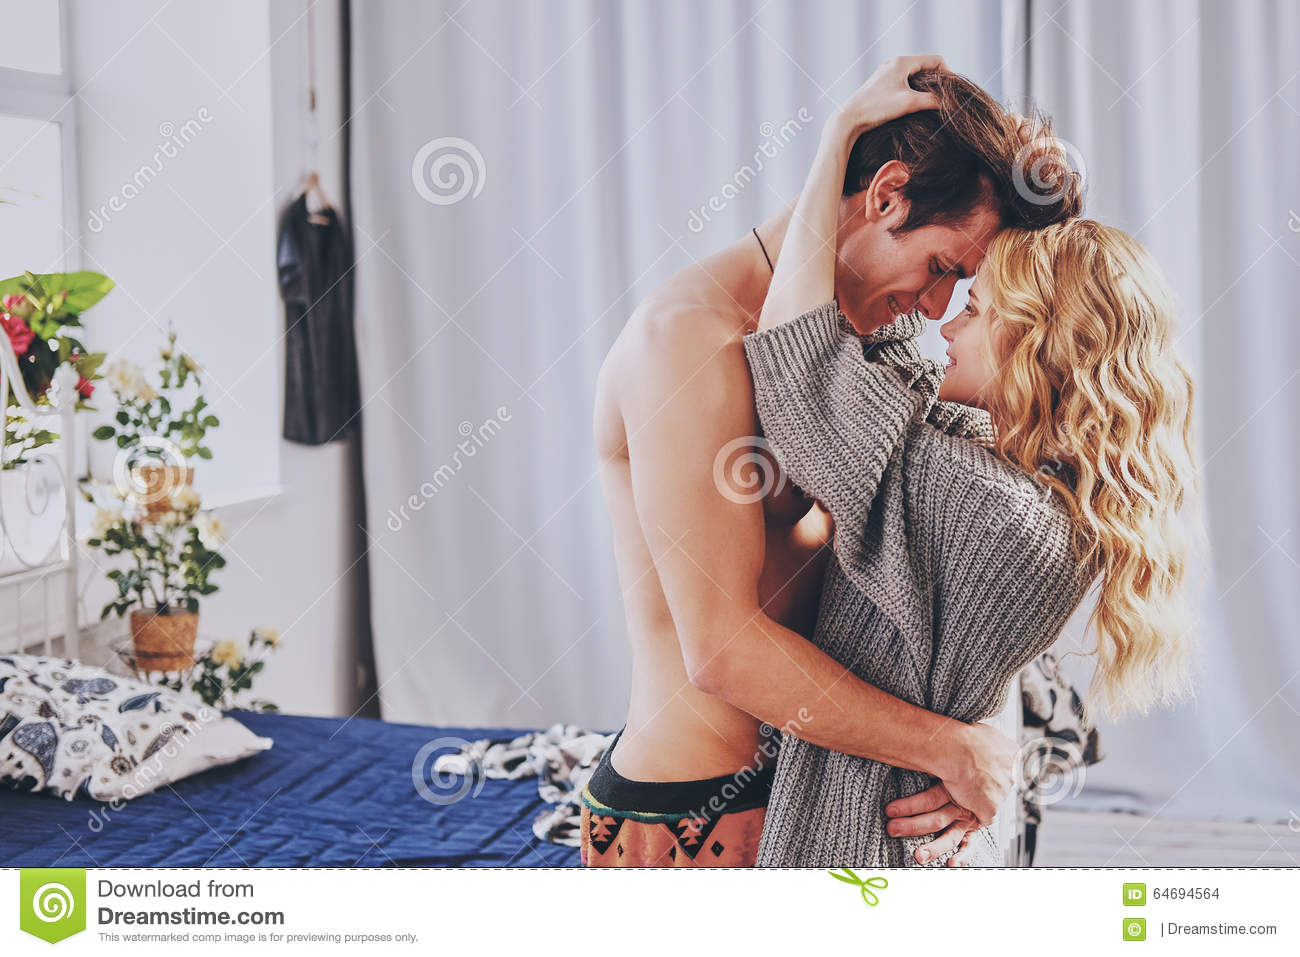 Men And Women In Bedroom Attractive Man And Woman In The Bedroom Together Cuddling Cute